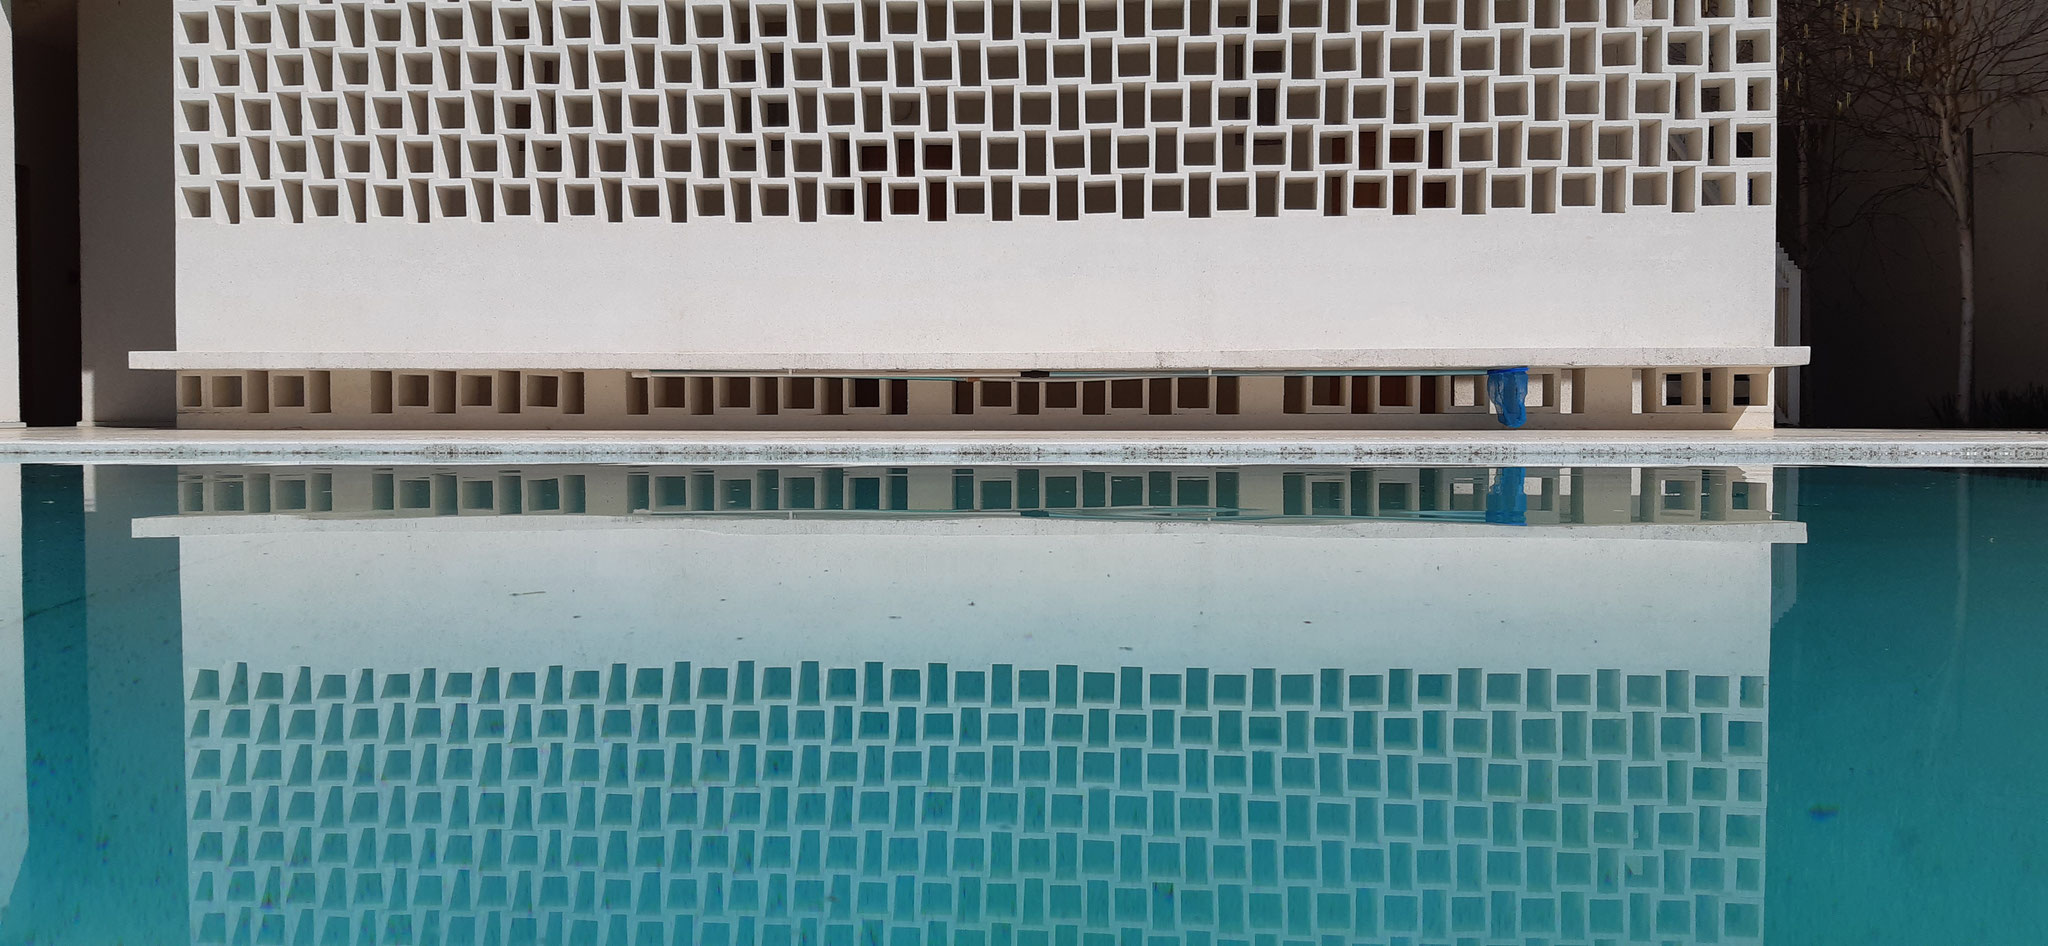 Wall by the pool